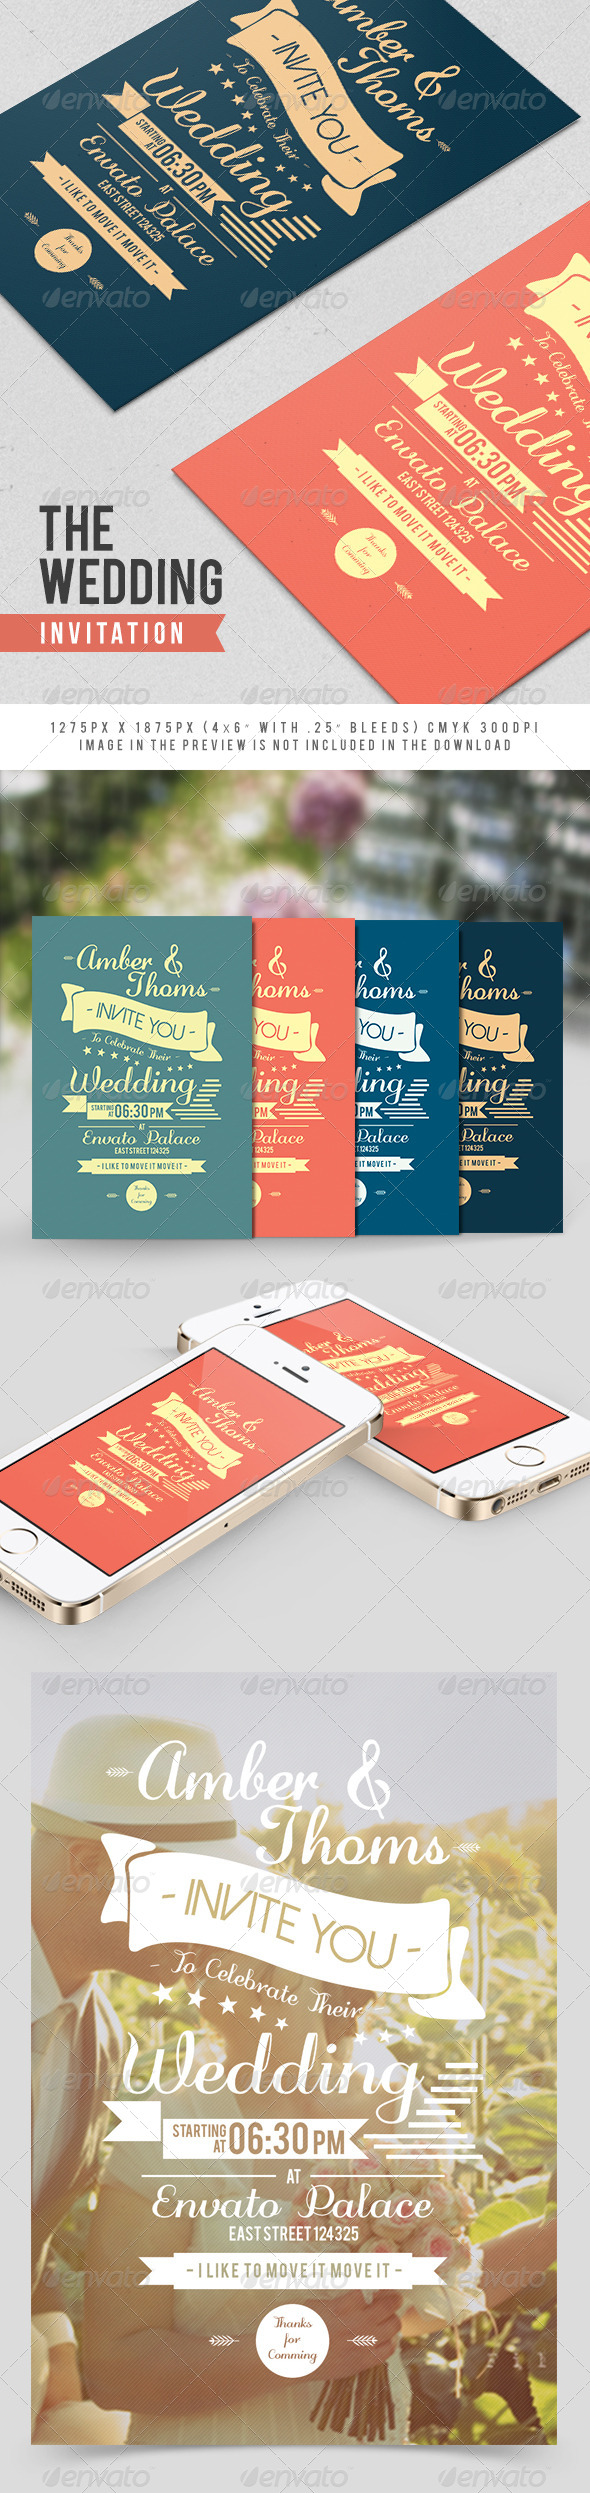 GraphicRiver The Wedding Invitation 7793774